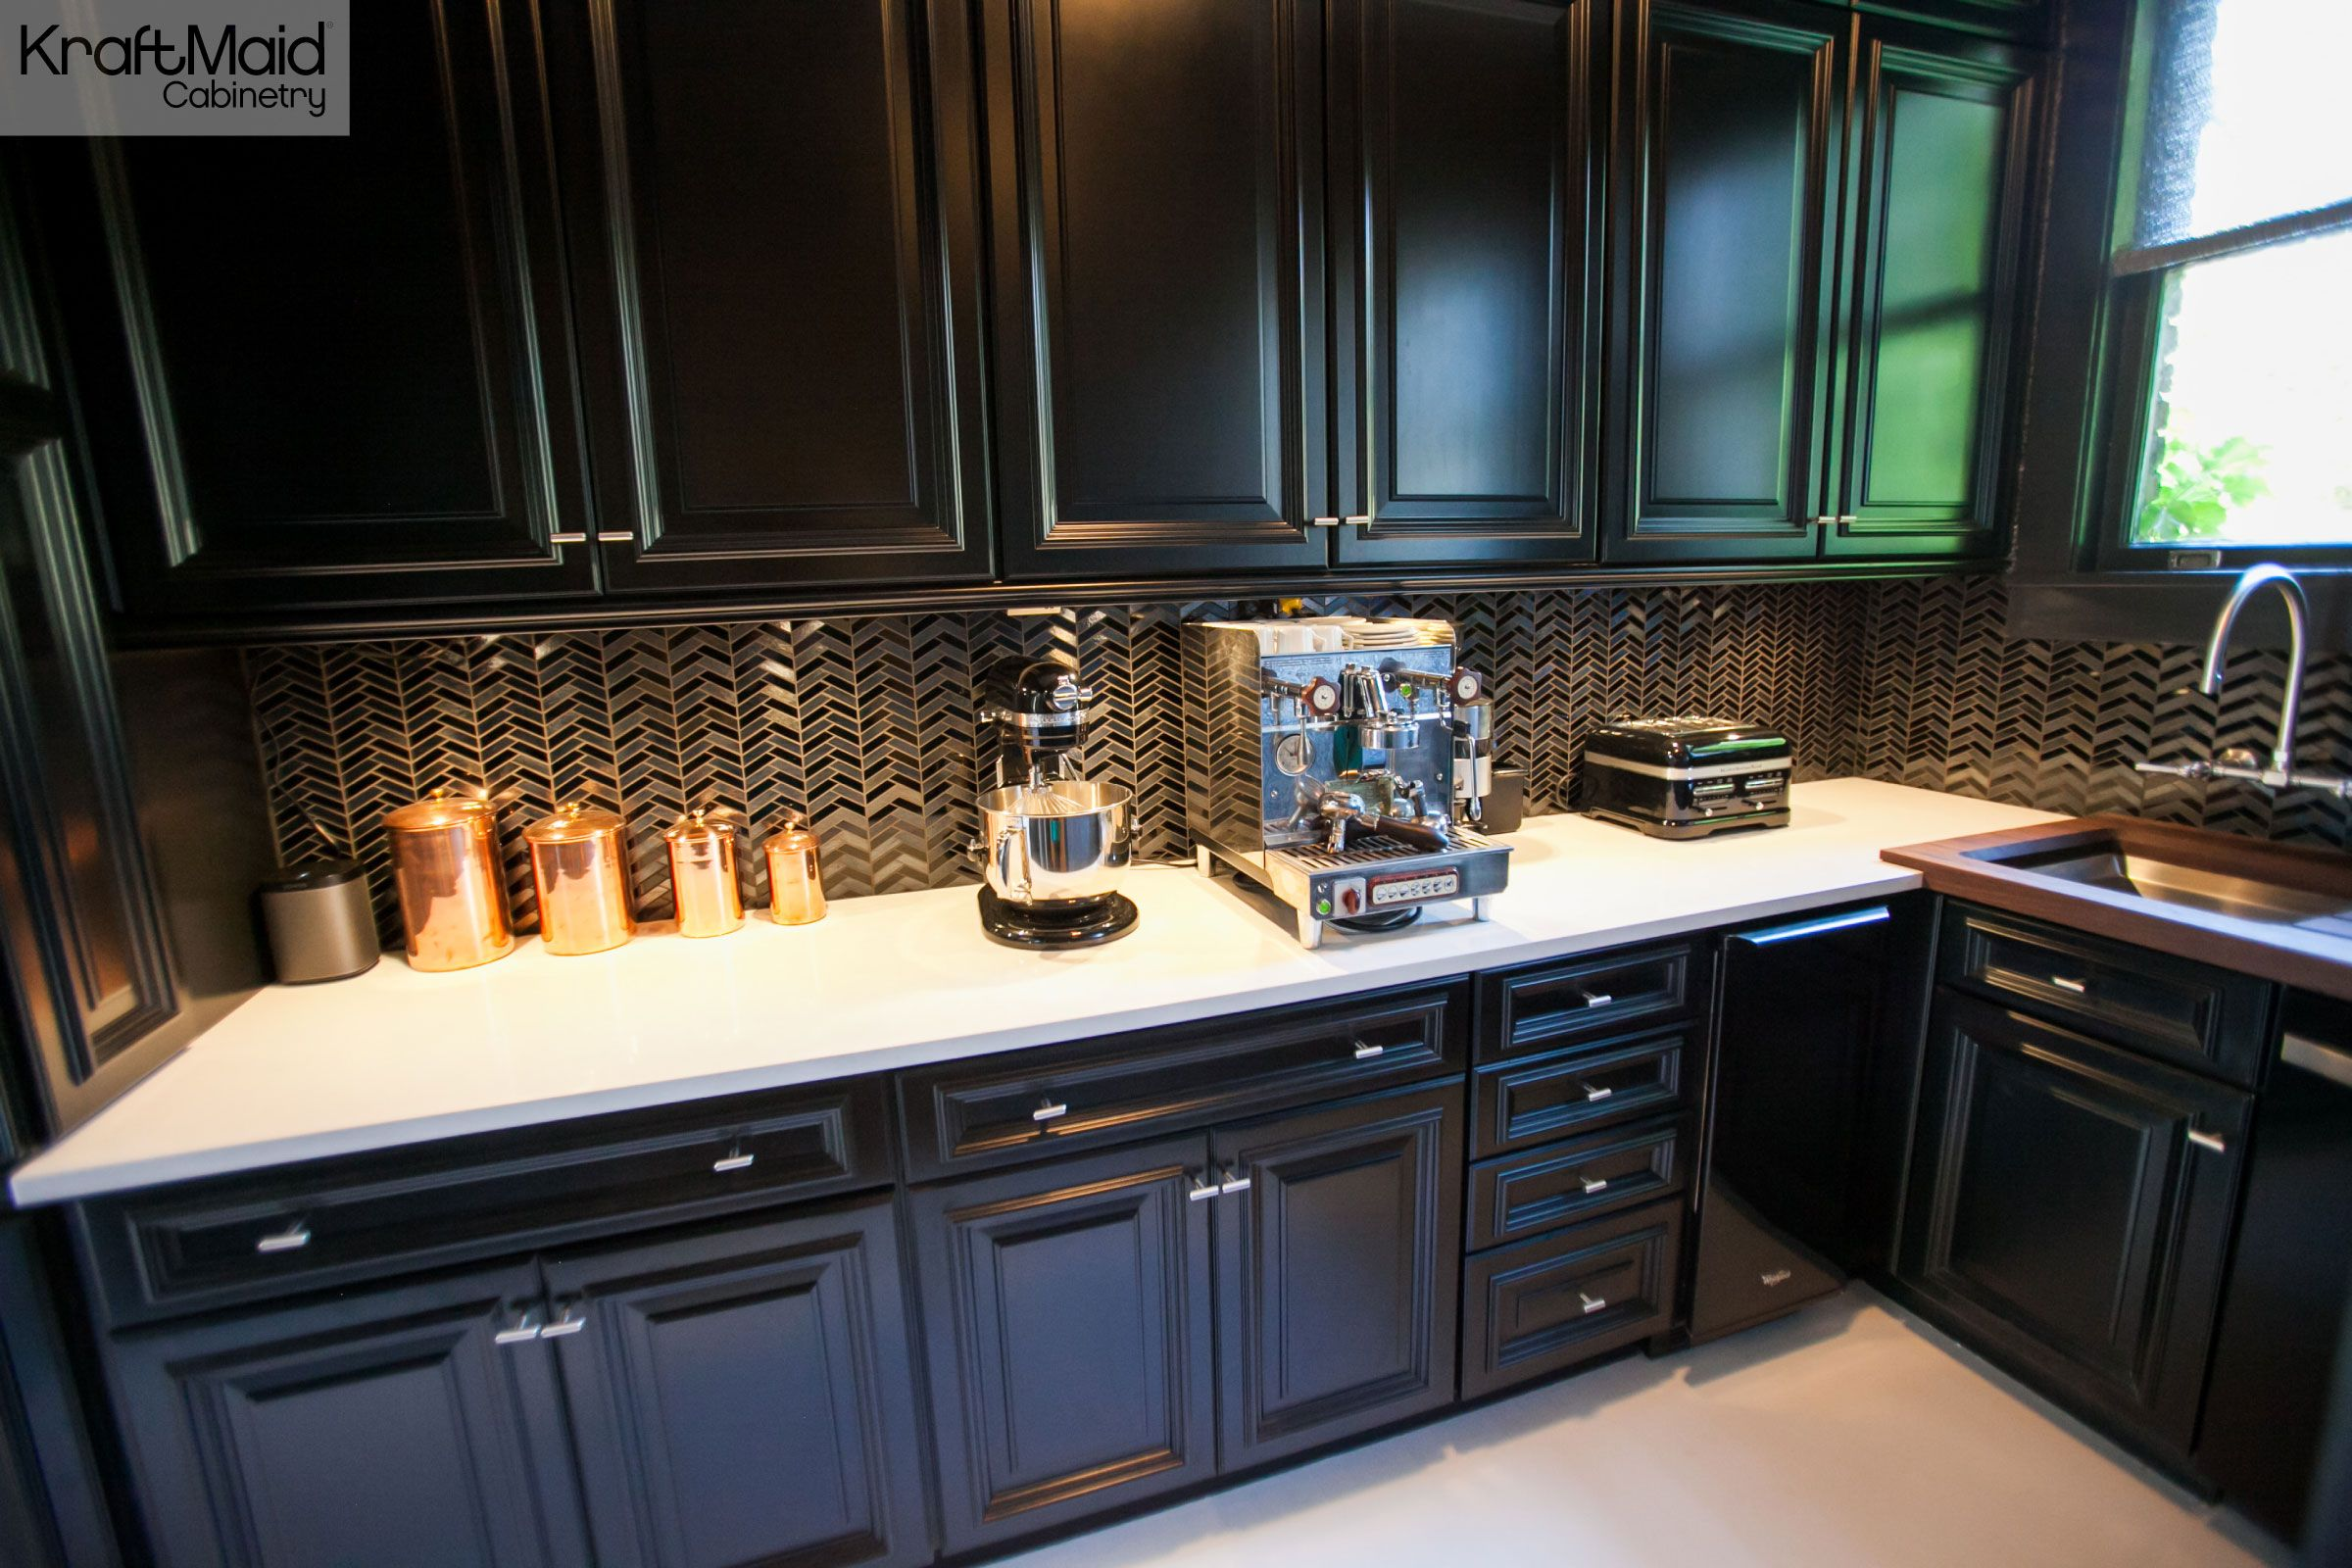 Create A Kitchen That S Cool Calm And Functional: The KraftMaid Butler's Pantry Featured In The House